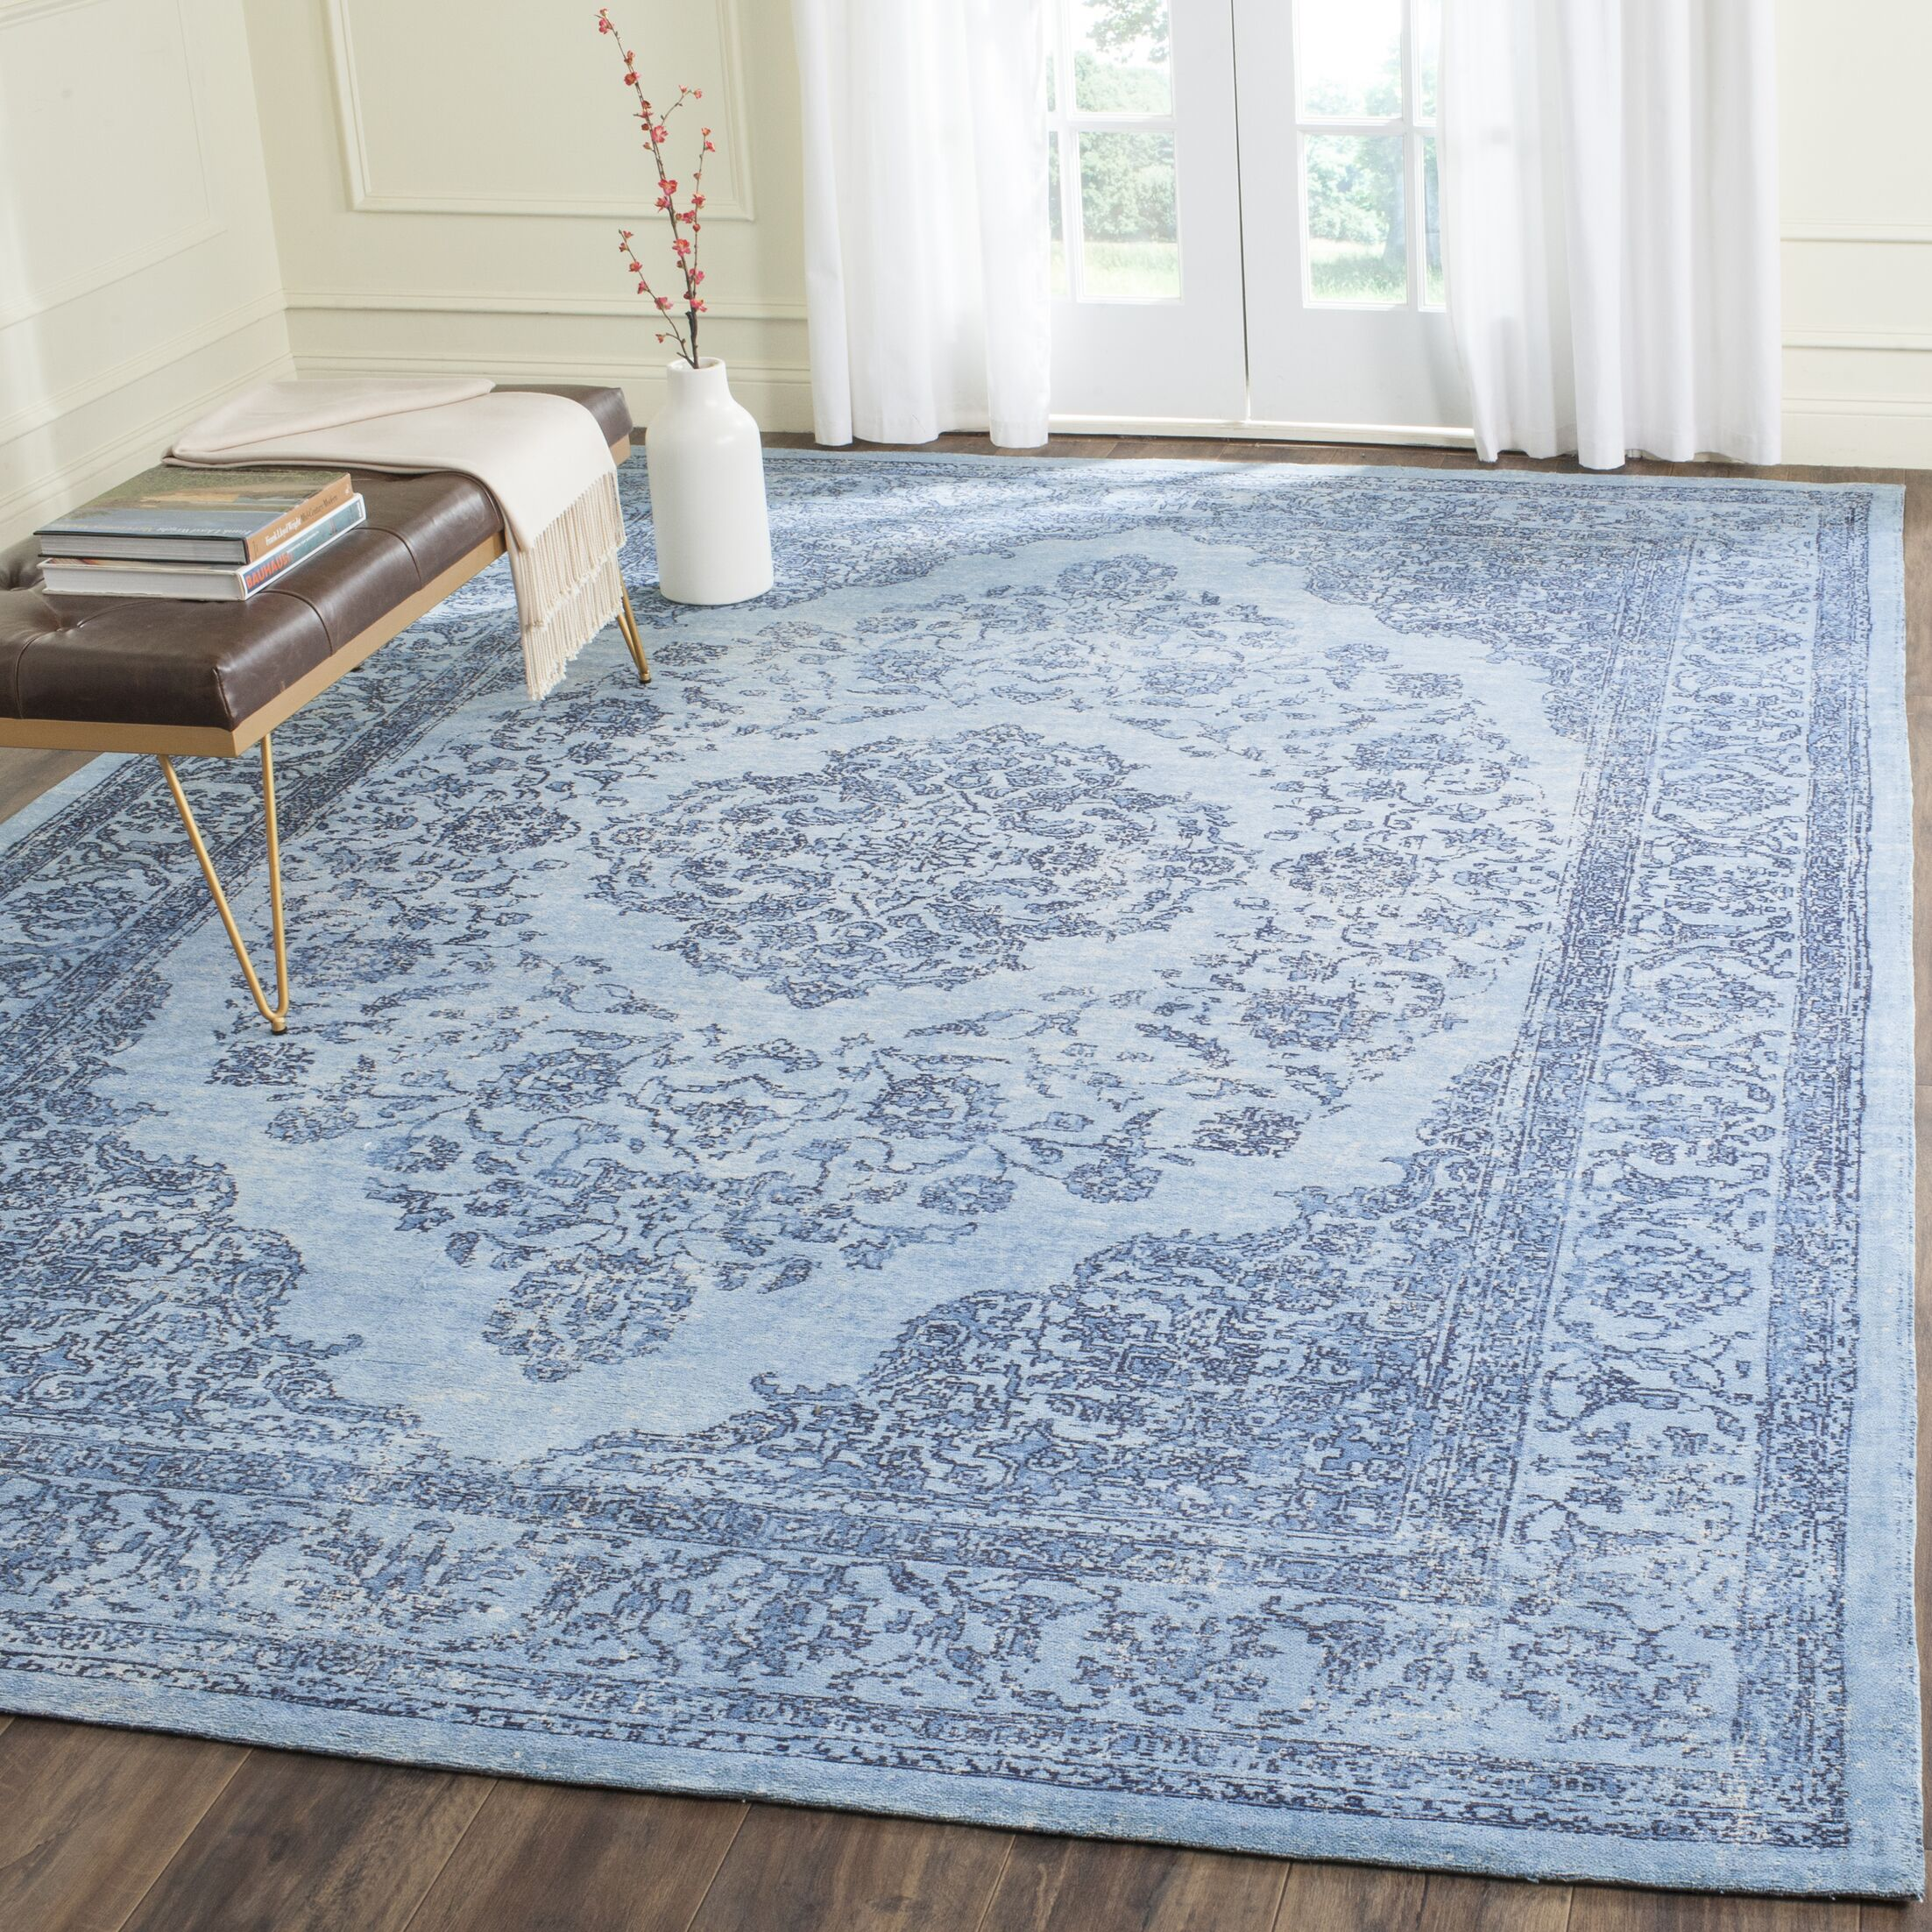 Middleborough Cotton Blue Area Rug Rug Size: Rectangle 8' x 11'